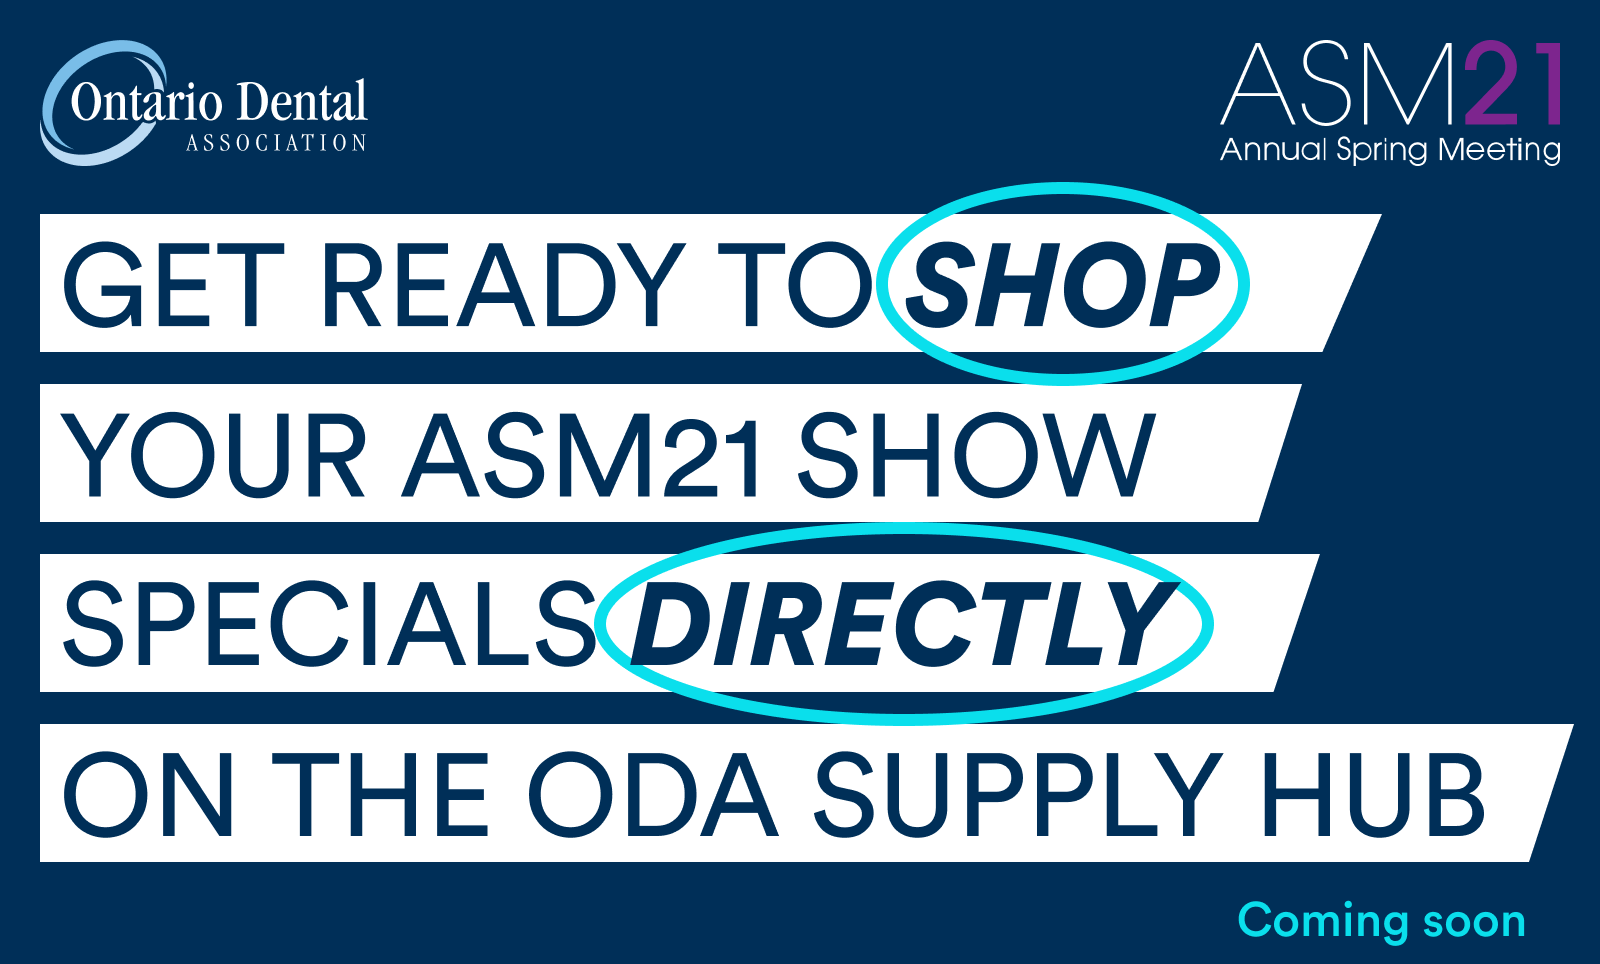 Announcement of the ODA ASM21 show specials on the ODA supply hub